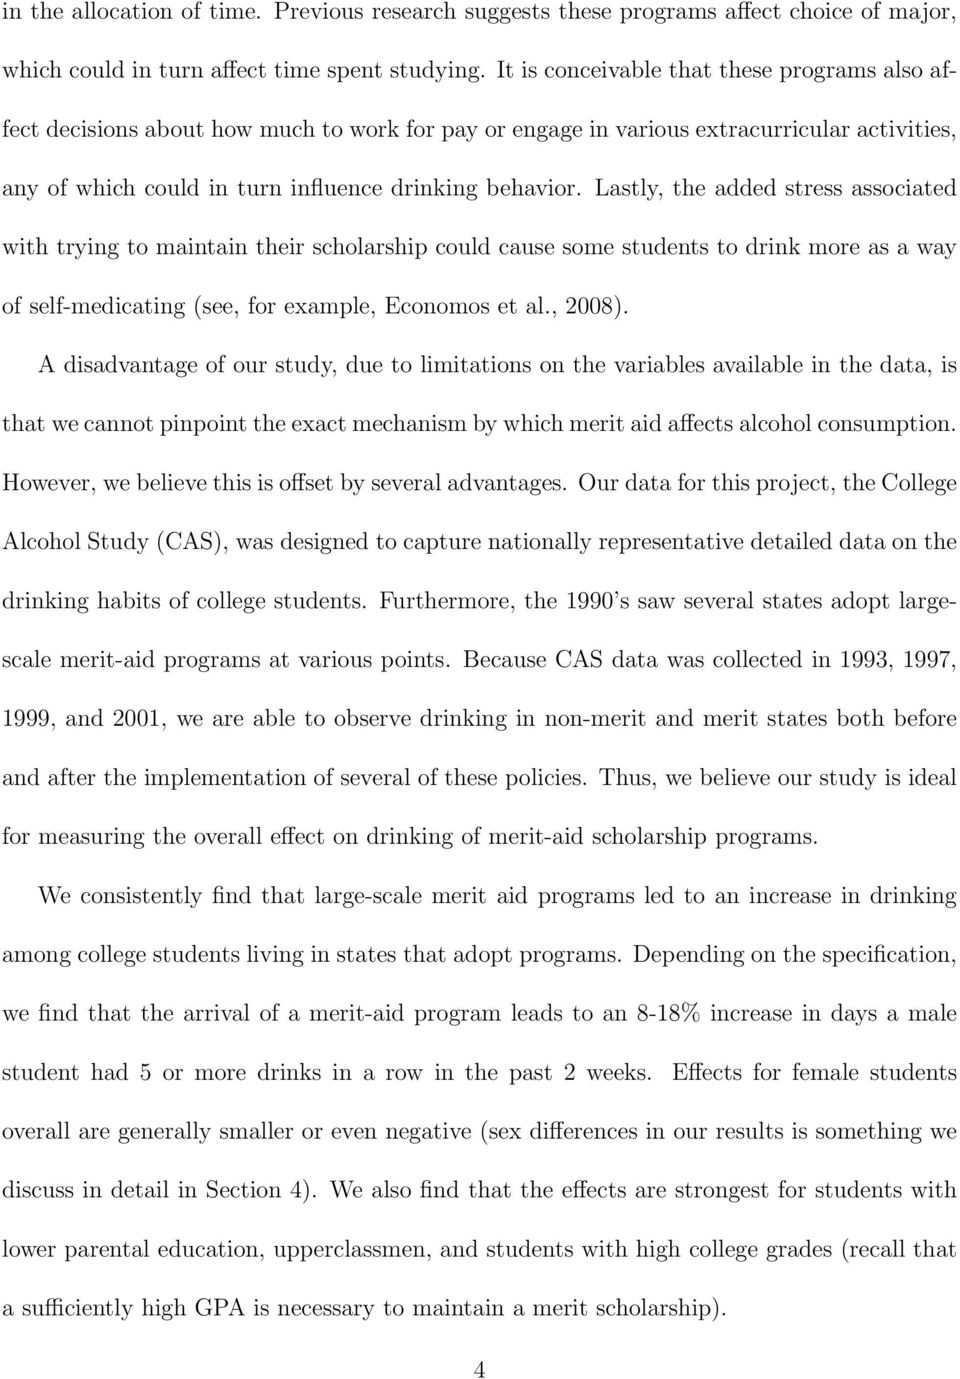 Lastly, the added stress associated with trying to maintain their scholarship could cause some students to drink more as a way of self-medicating (see, for example, Economos et al., 2008).